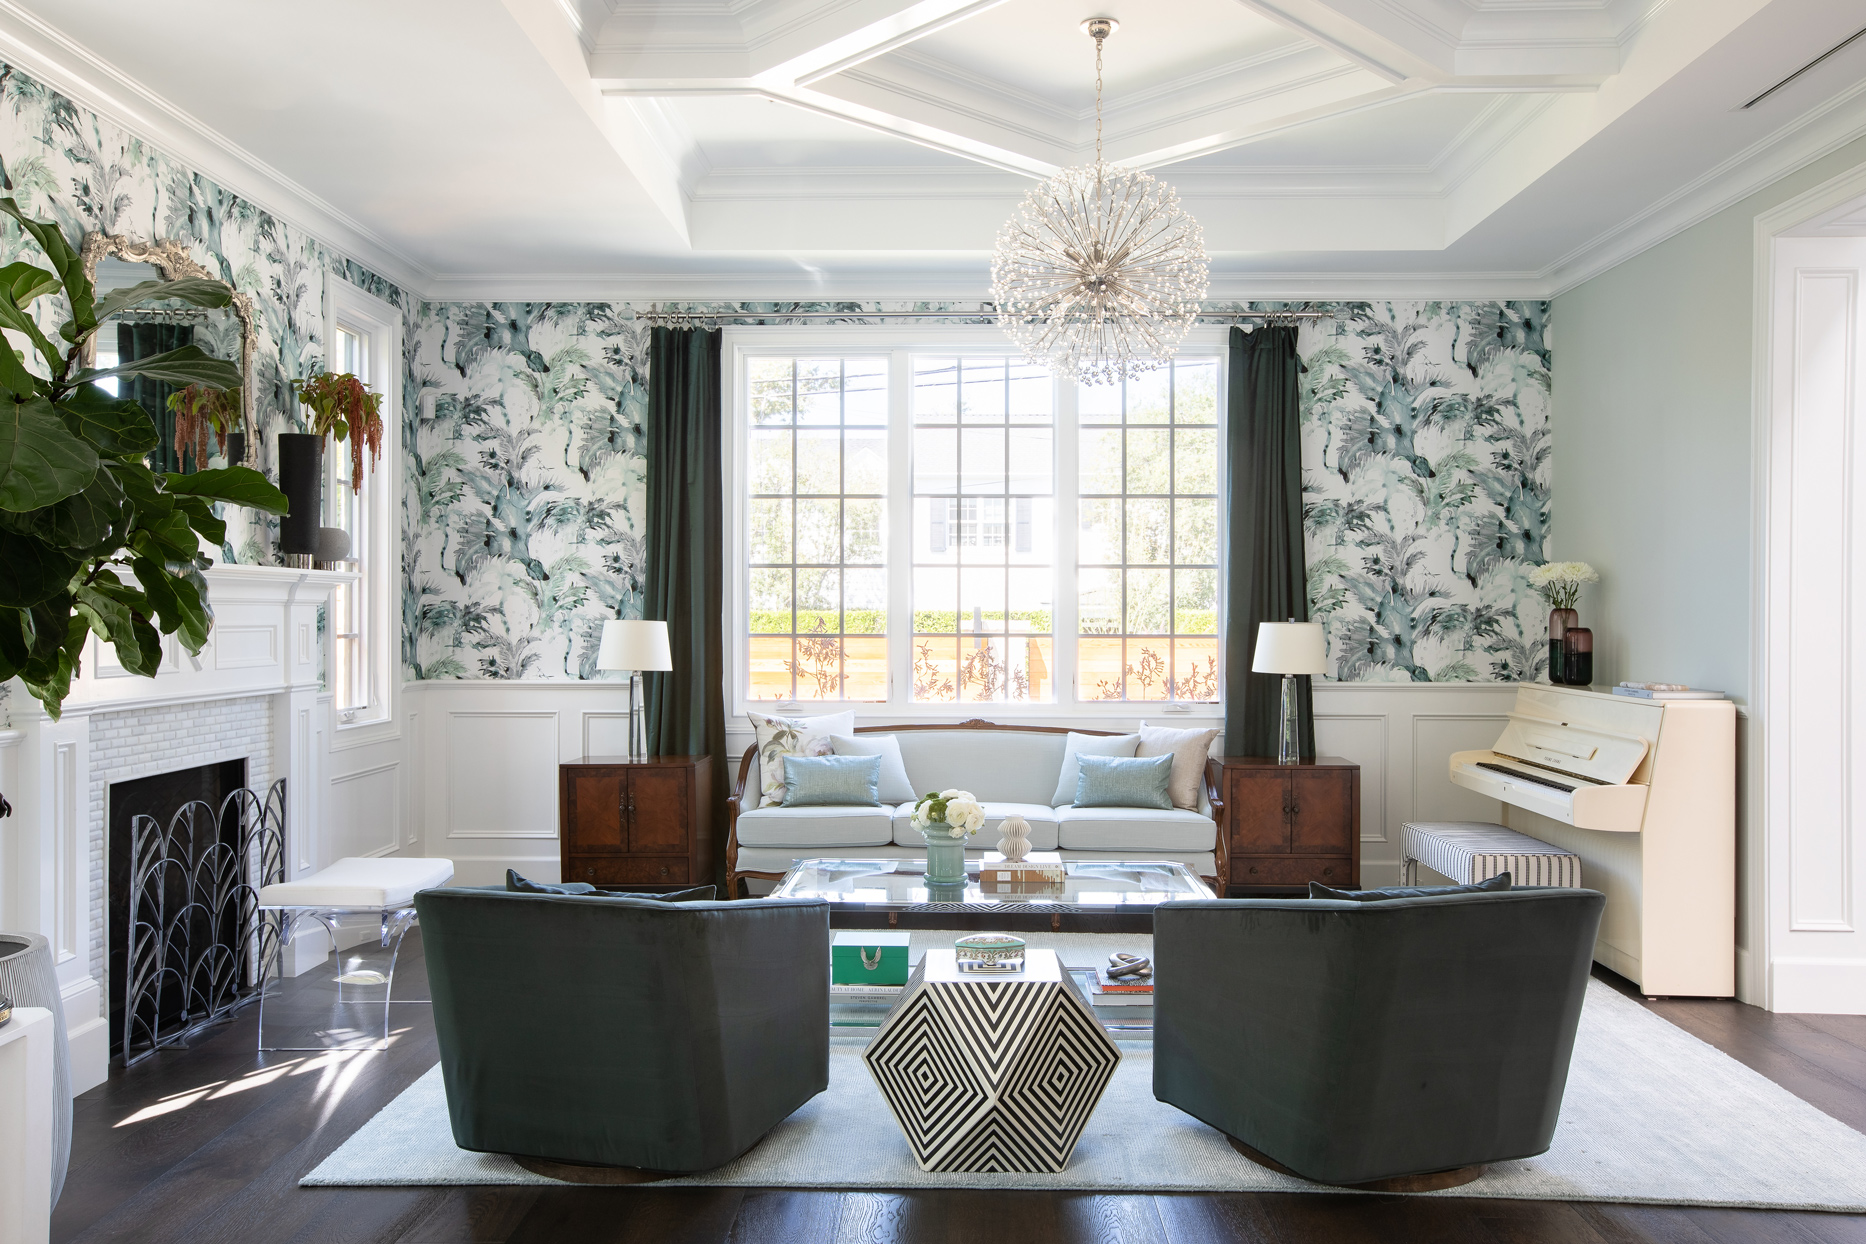 green and white print wall paper, asymmetrical chair and table furniture set up